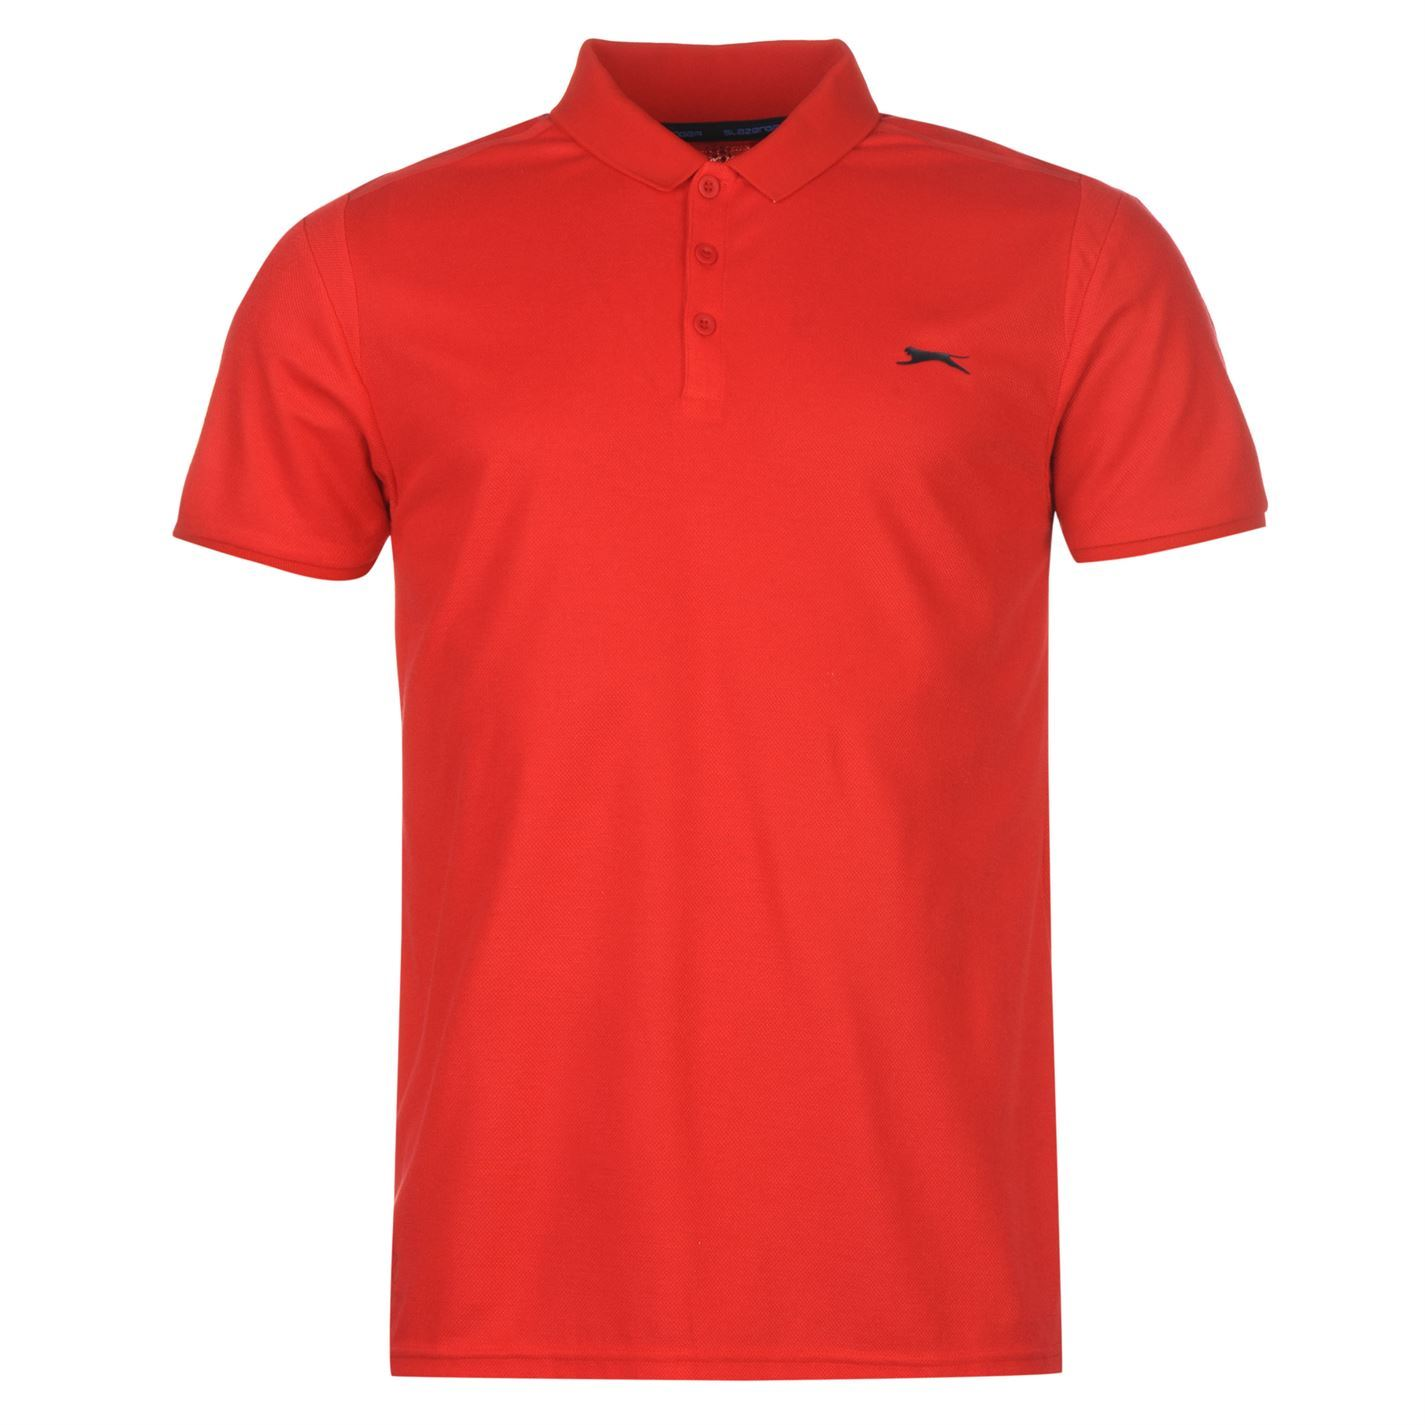 Slazenger-Mens-Core-B-Line-Polo-Tee-Shirt-